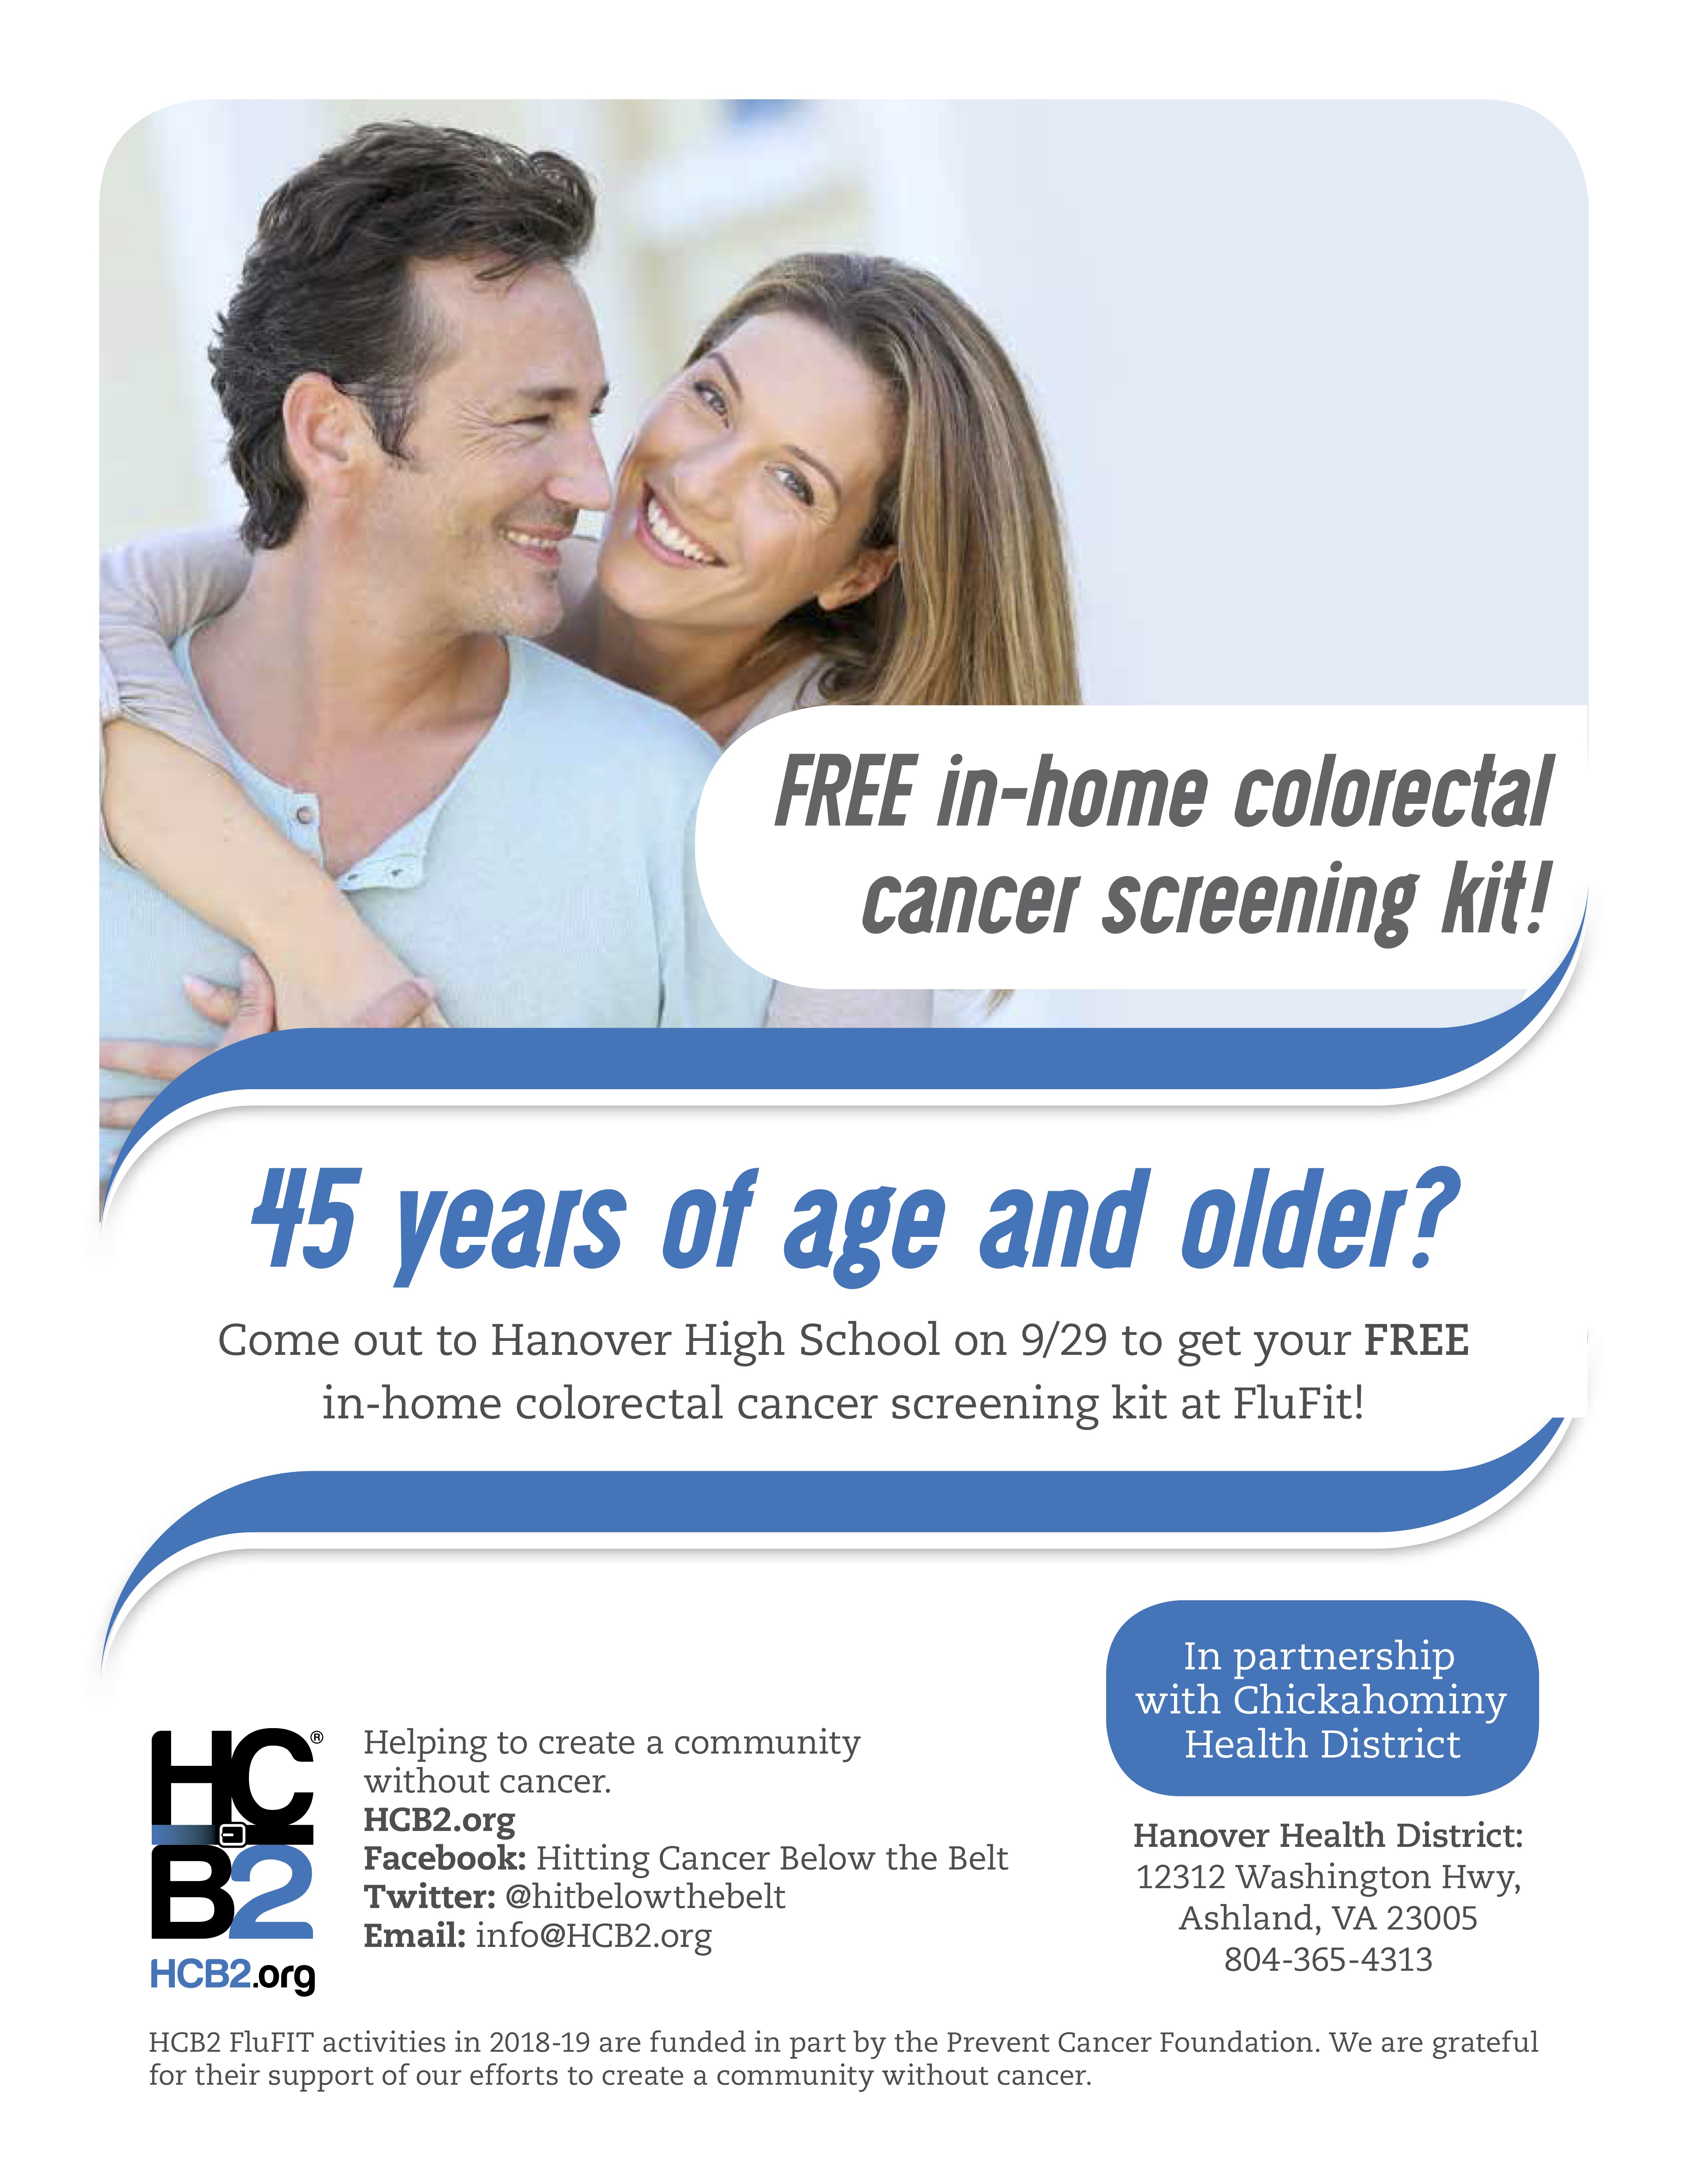 FluFIT free colonial rectal cancer screening from 7am to 12pm 9-29-18 at Hanover High School